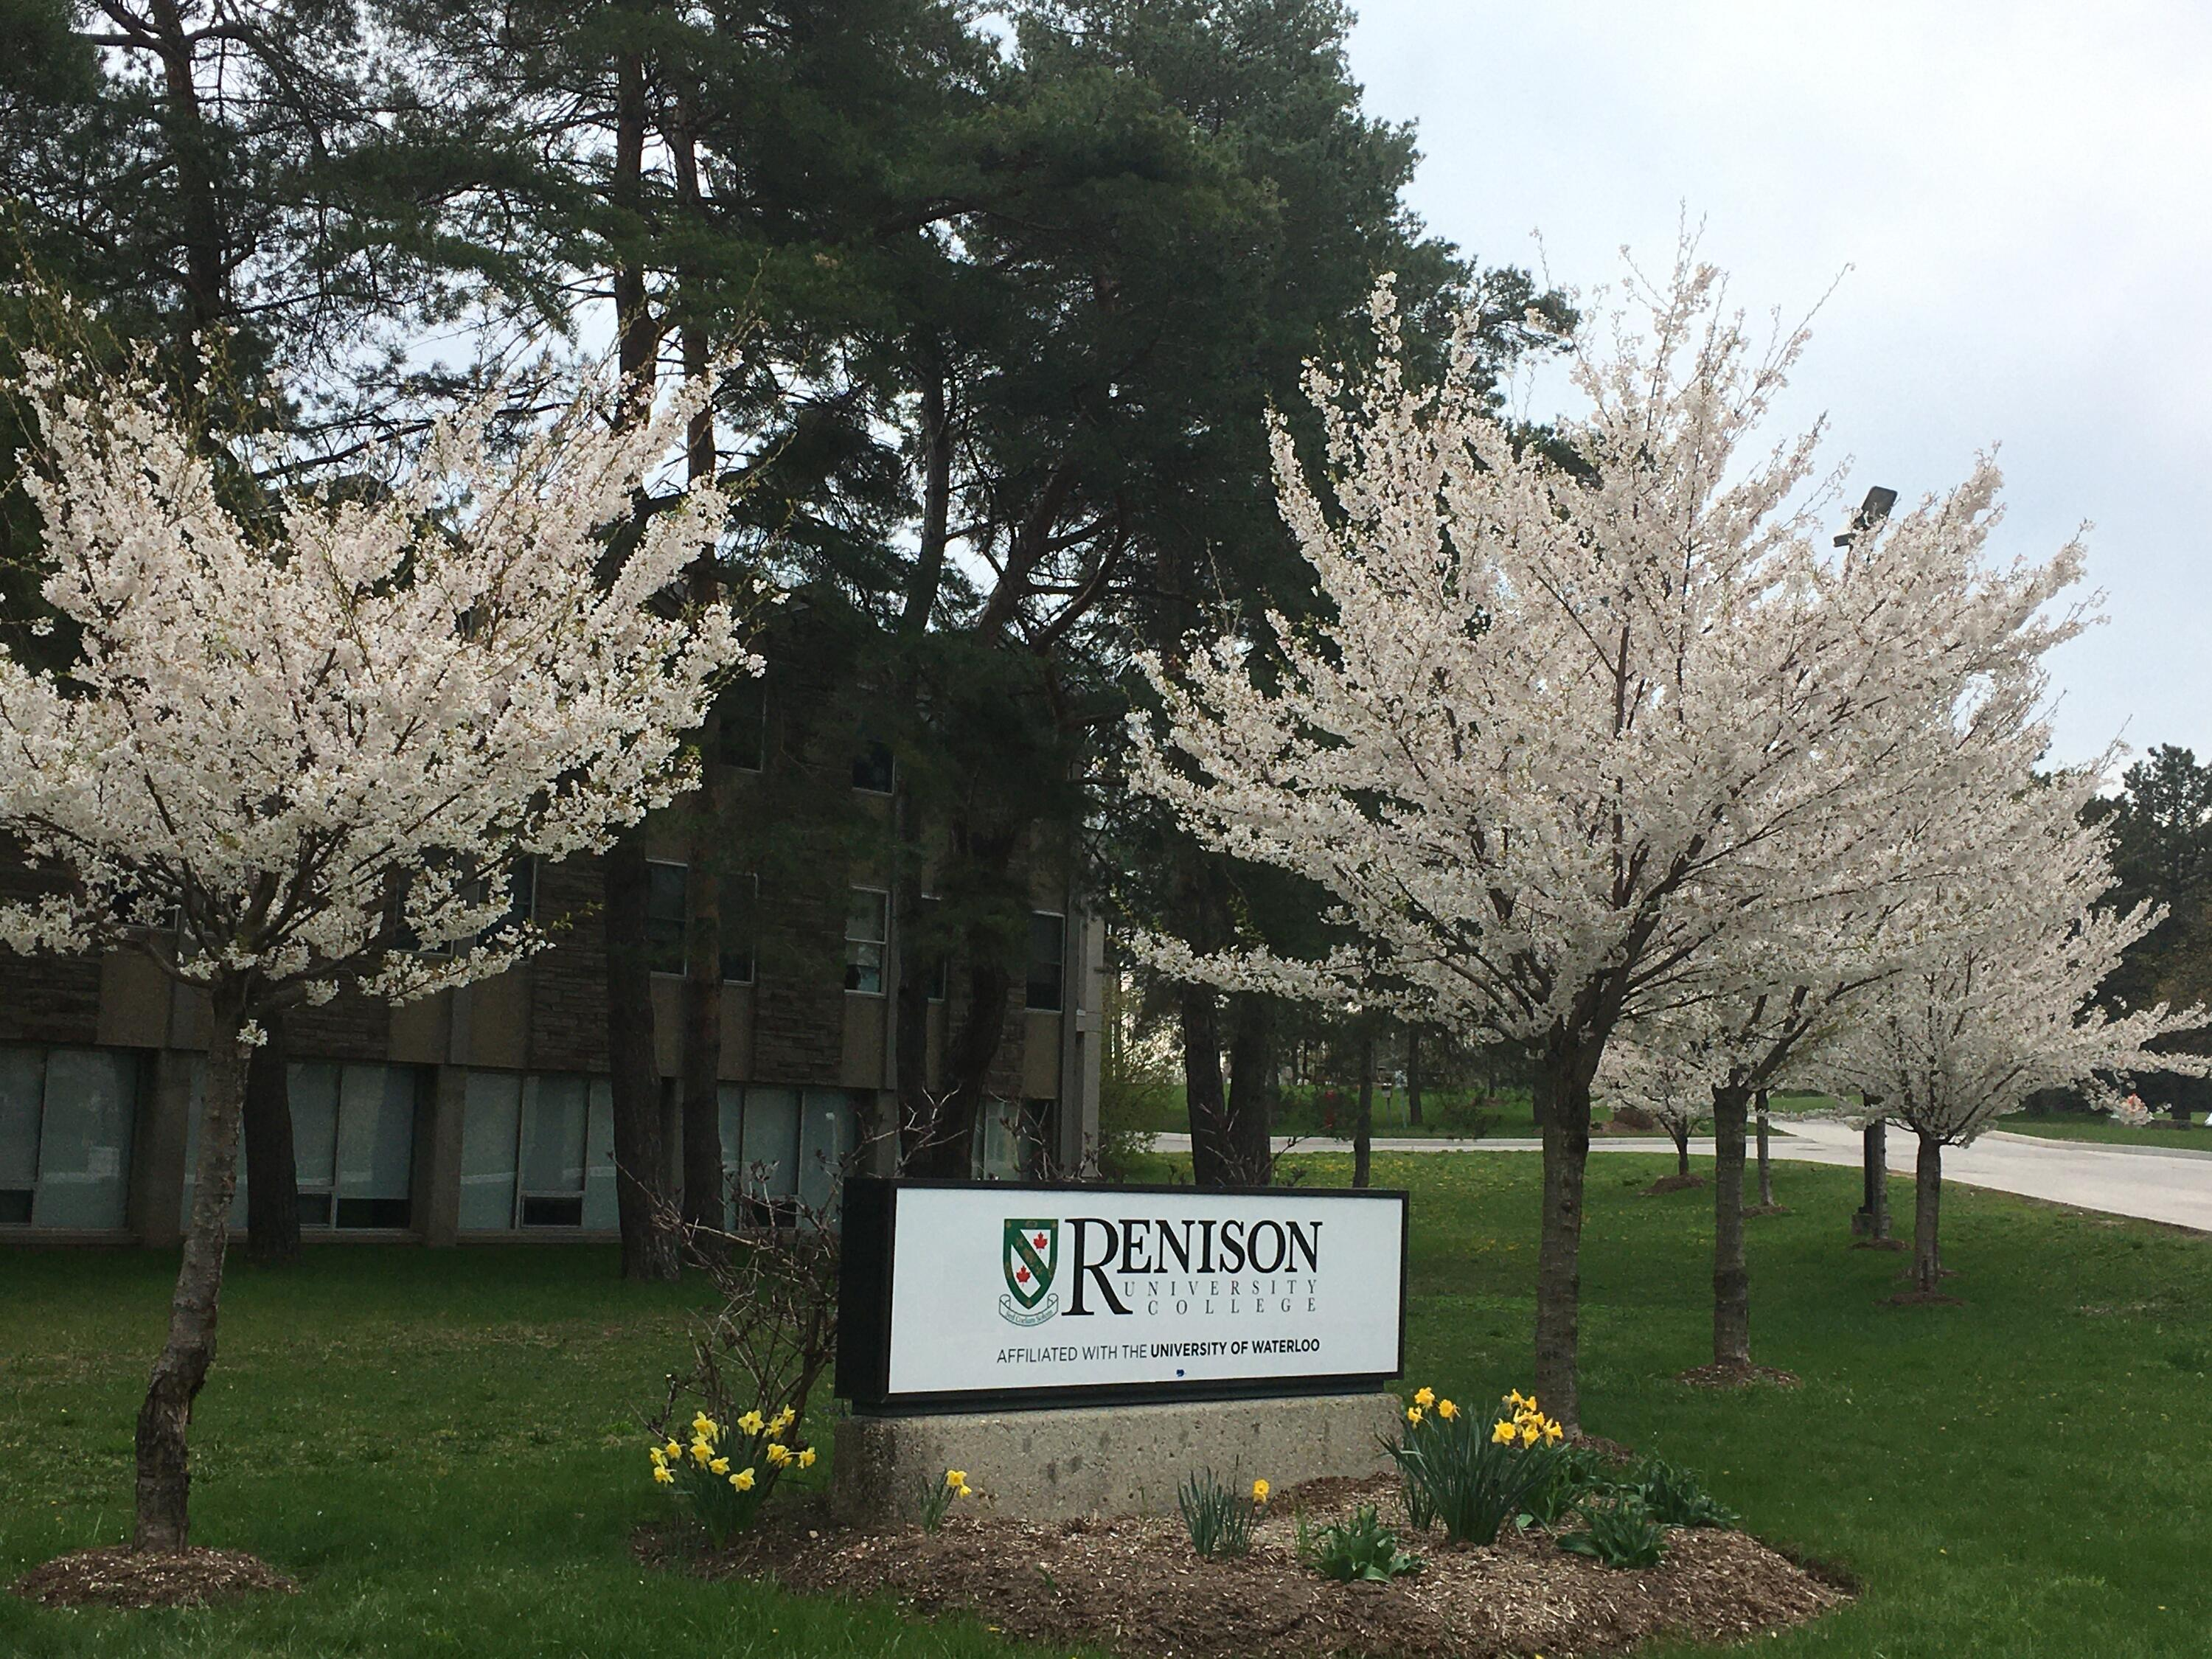 Renison sign with Sakura on either side.